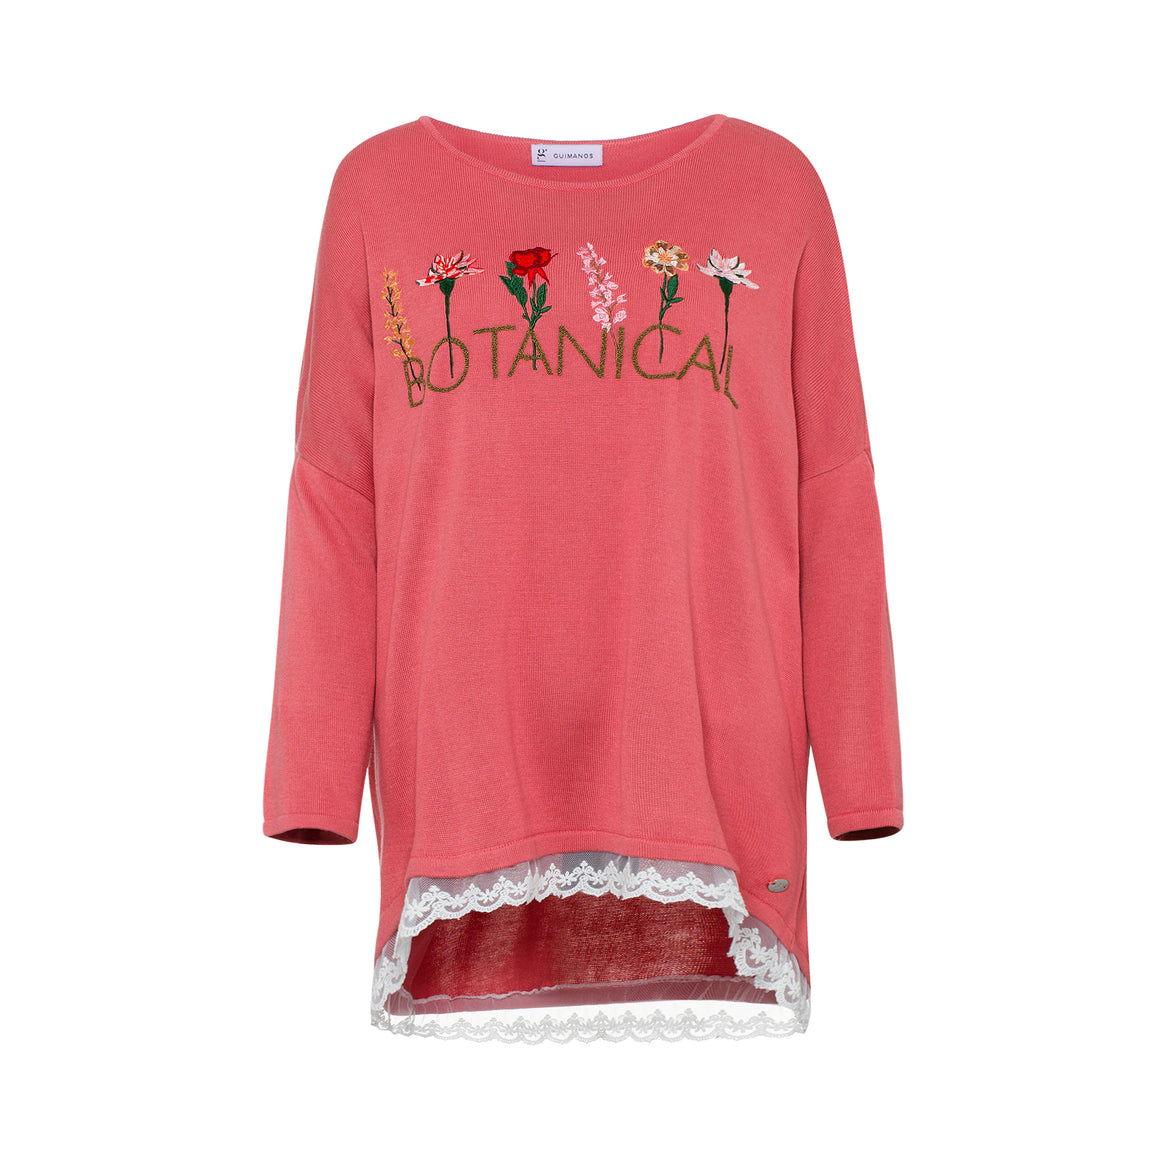 Botanical Sweater